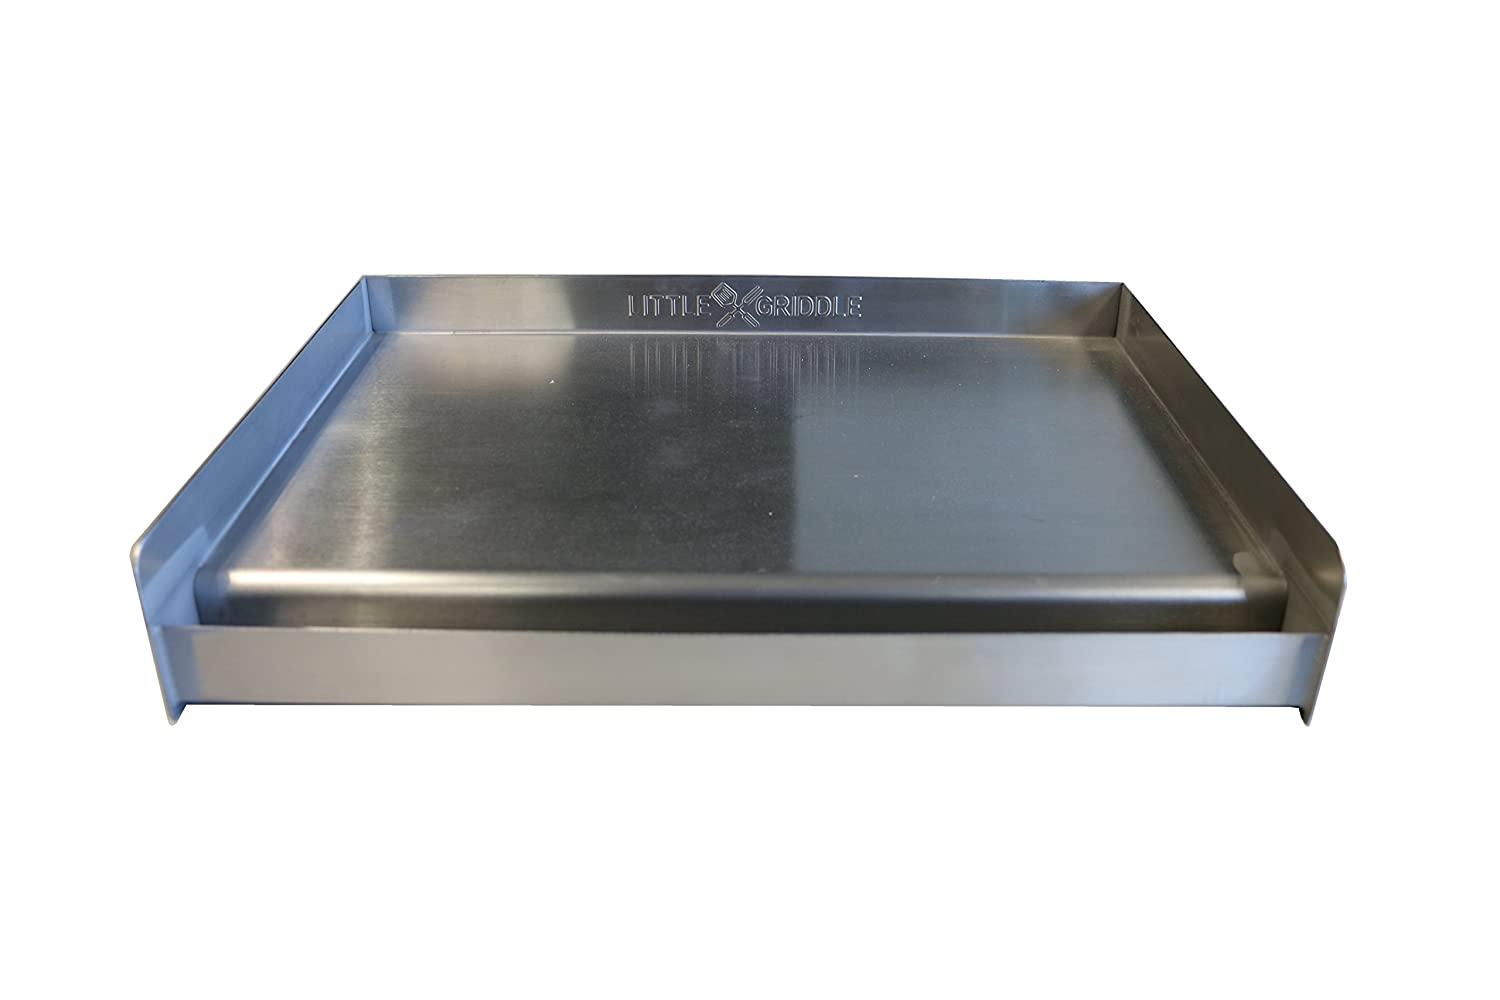 "Little Griddle SQ180 100% Stainless Steel Universal Griddle with Even Heating Cross Bracing for Charcoal/Gas Grills, Camping, Tailgating, and Parties (18""x13""x3"")"